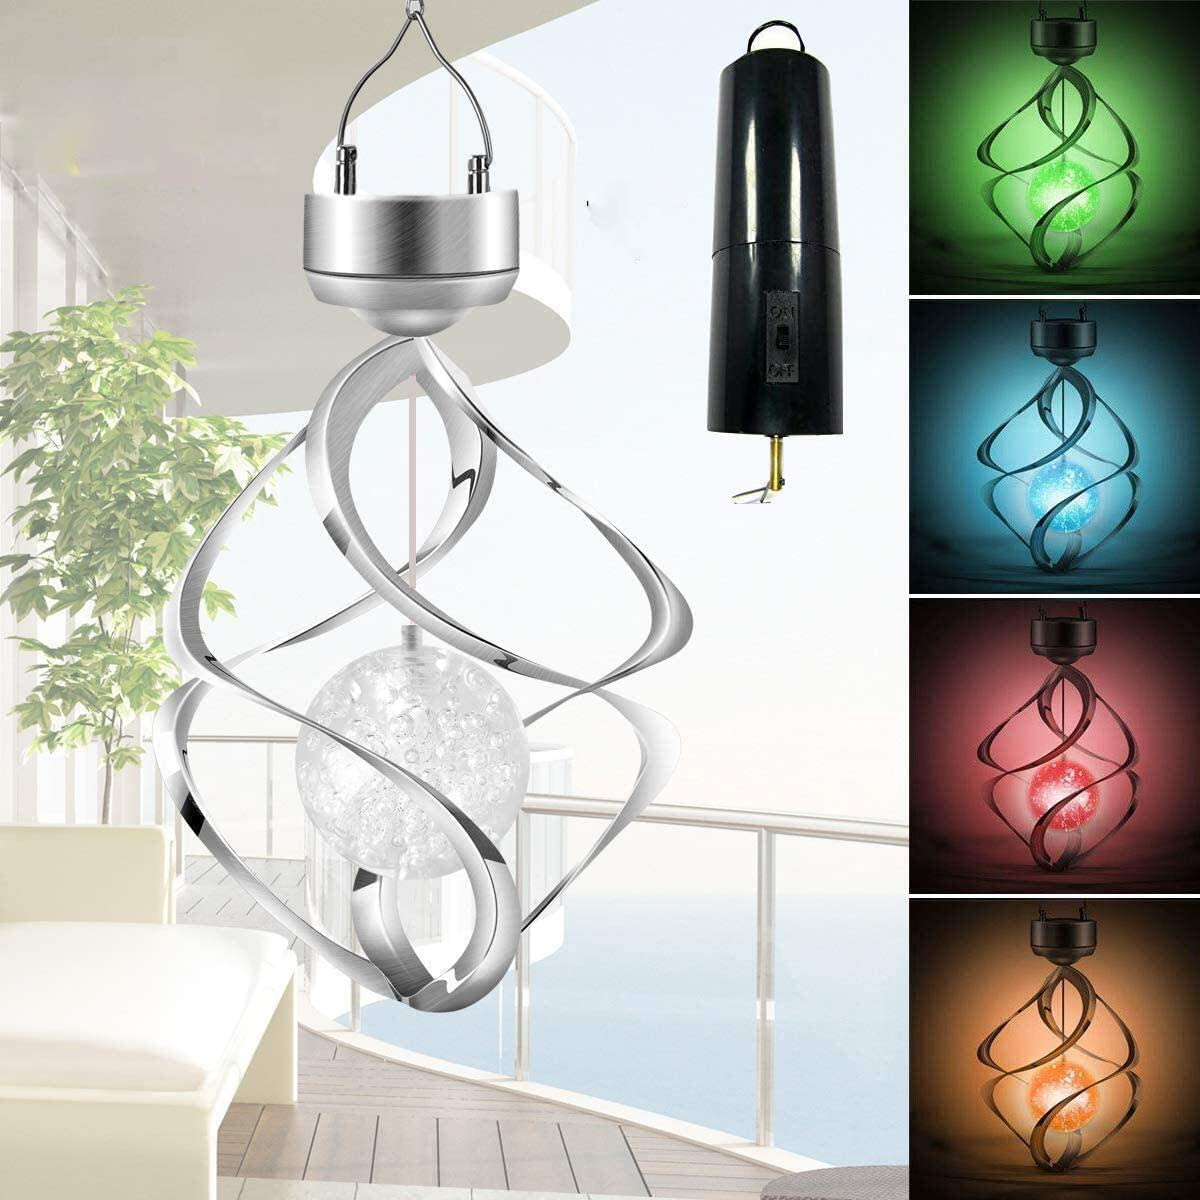 Hanging Solar Lights Outdoor-Wind Chimes Lights LED Colour Changing Hanging Light for Design Decoration for Garden, Patio, Balcony Outdoor & Indoor (+Rotating Motor )